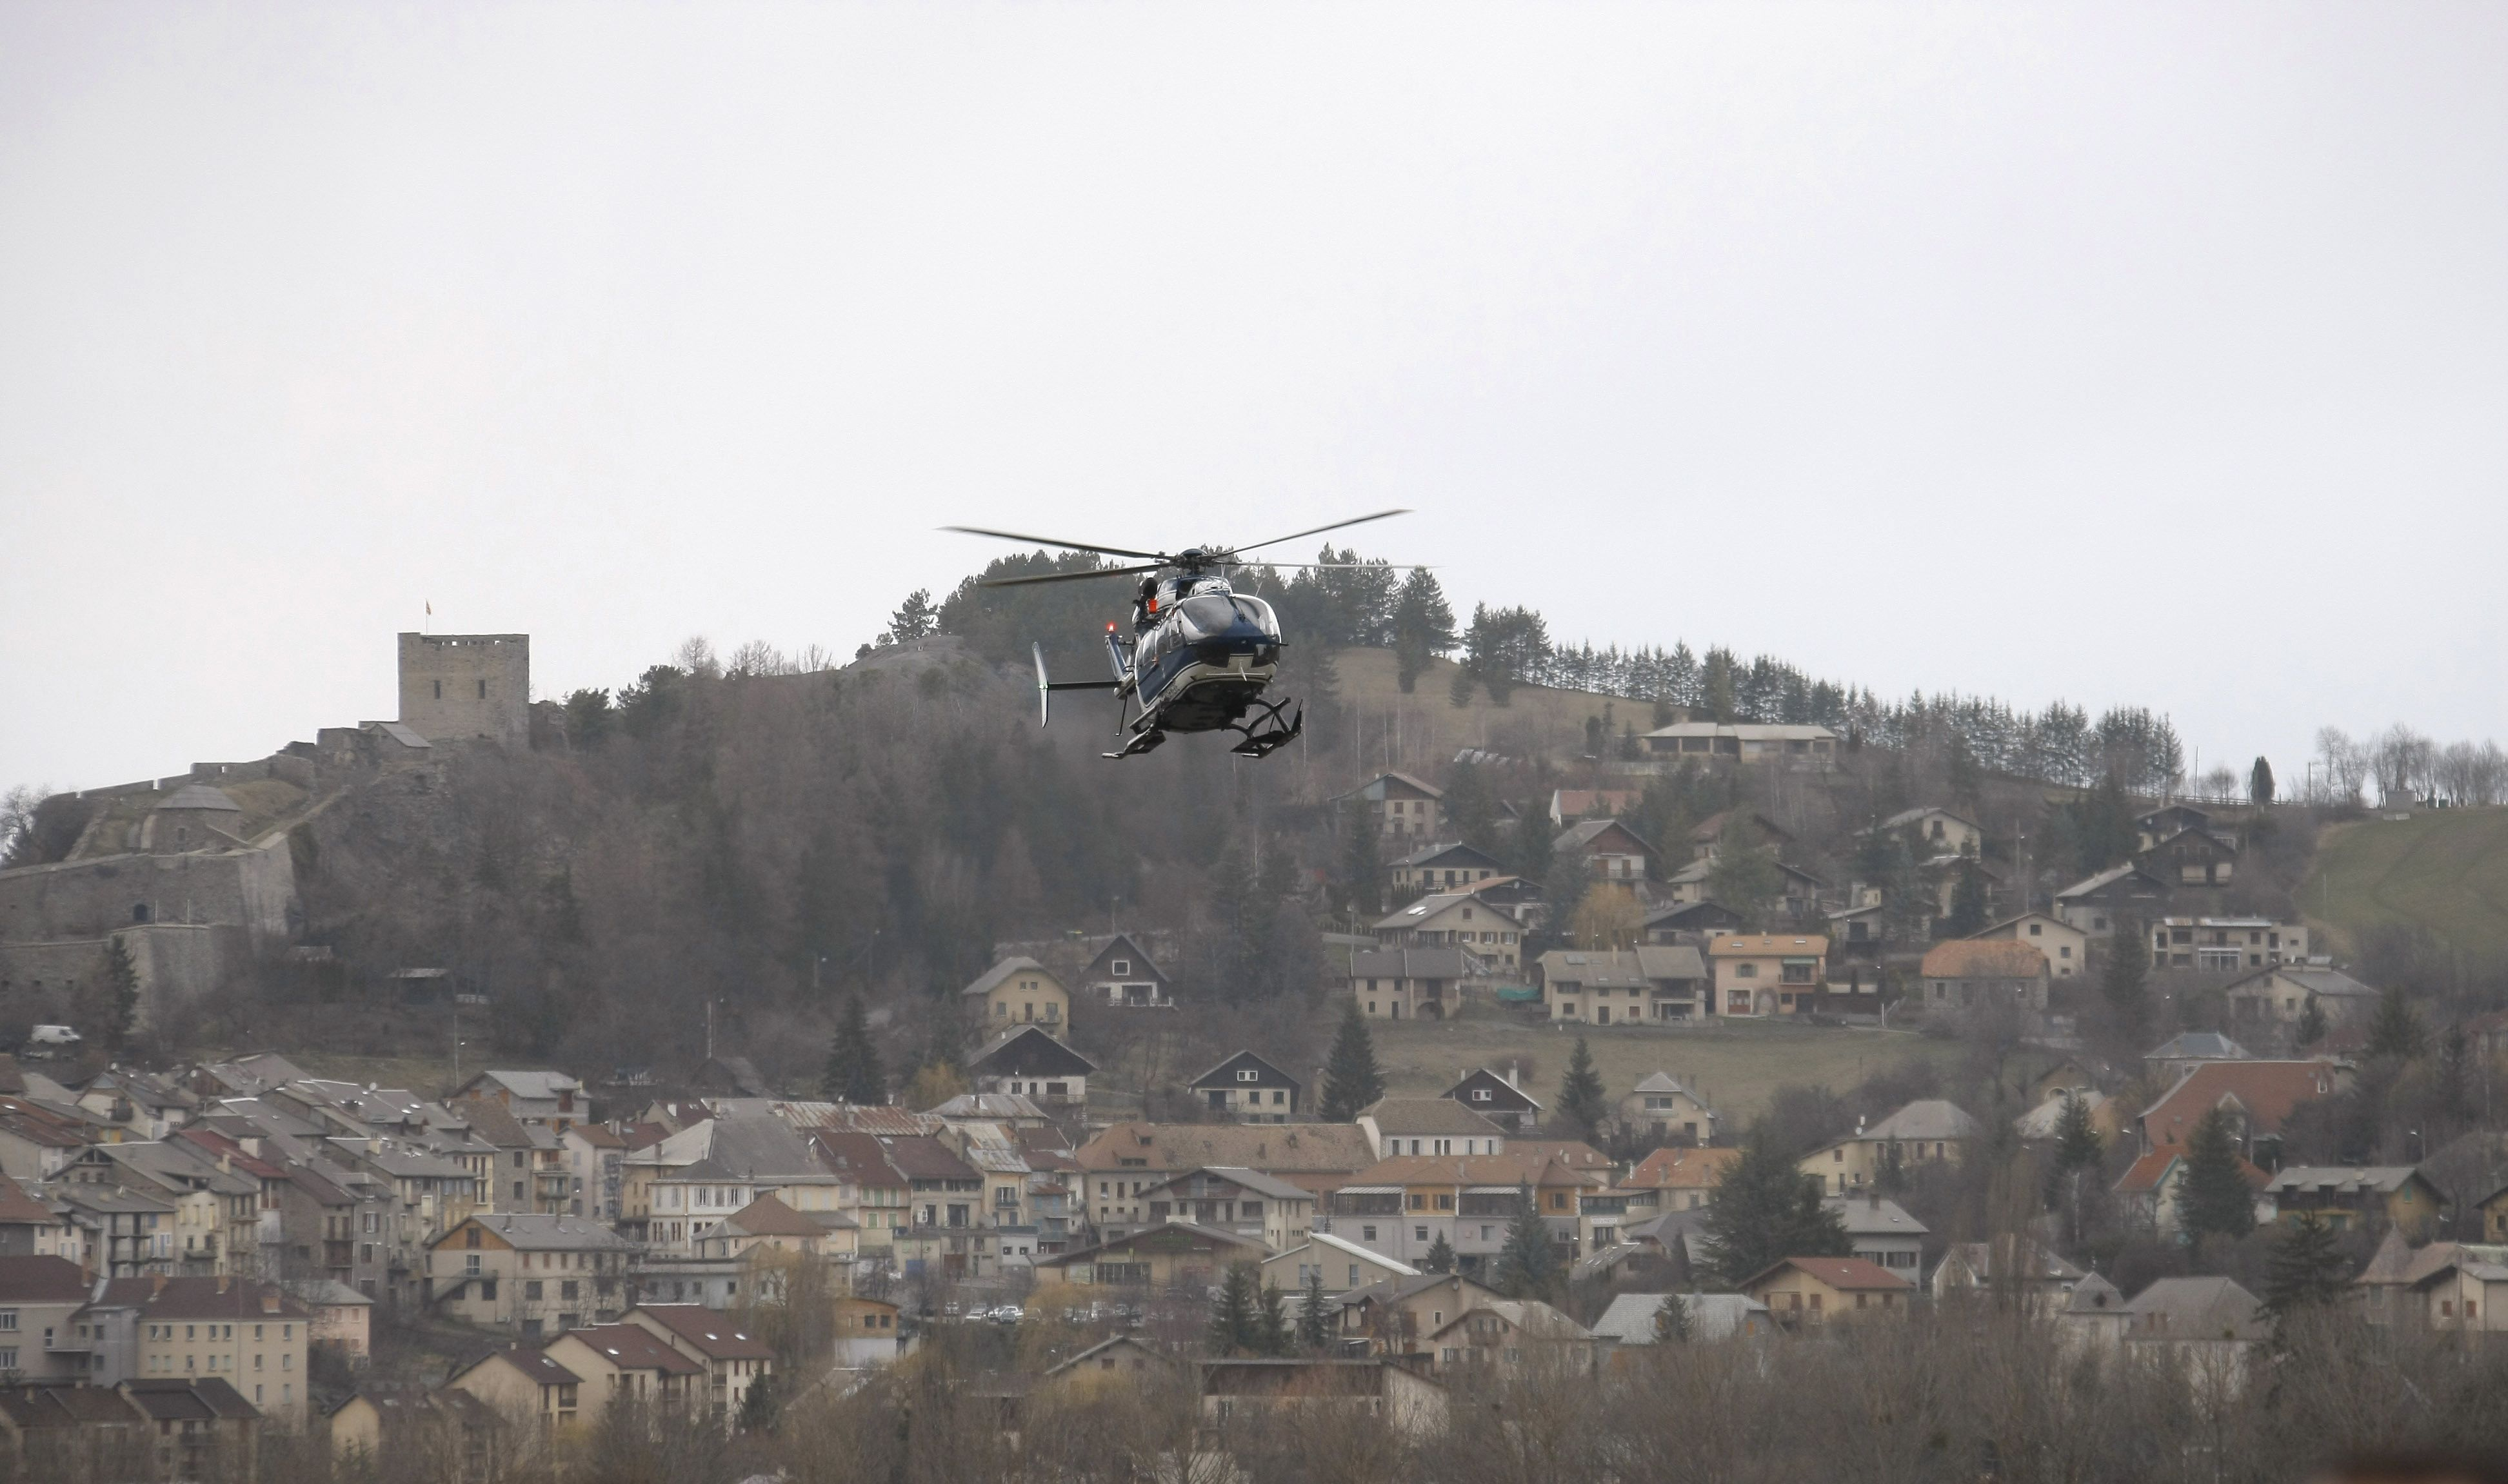 Could Airplane Age Be a Factor in Crash of 24-Year-Old Germanwings A320?